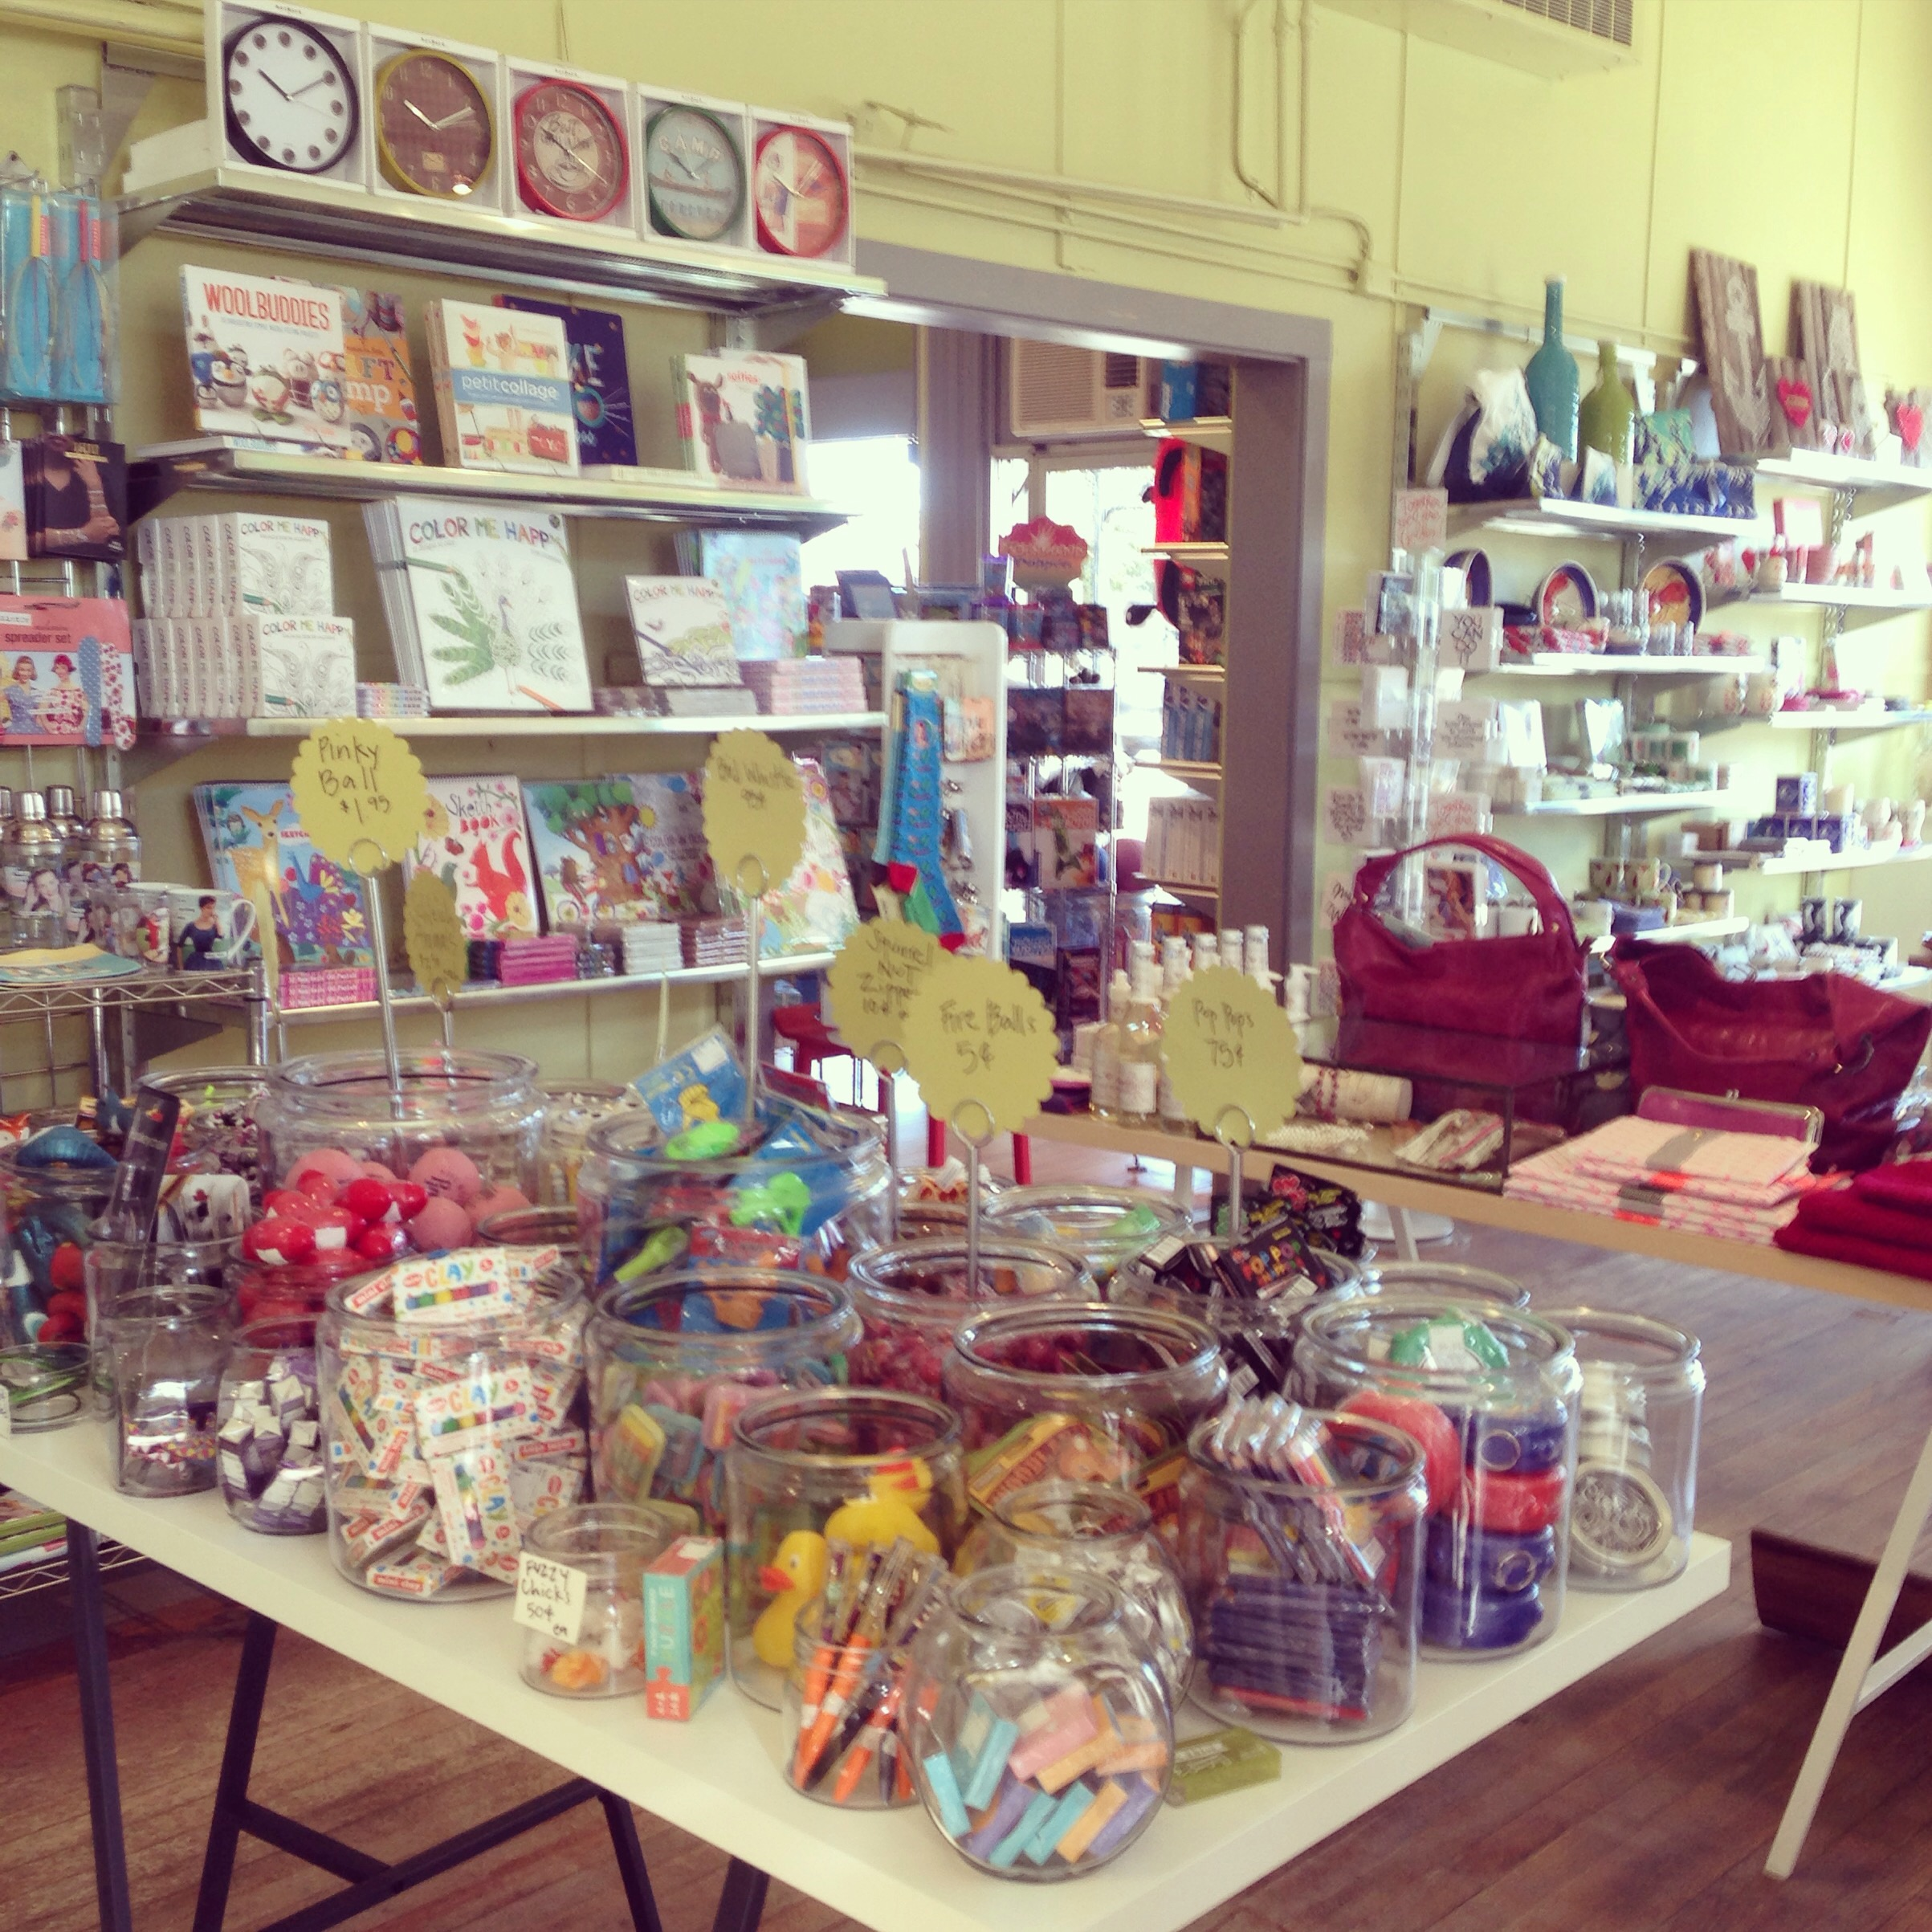 Wyler's in Brunswick, Maine - lots of great, unique gifts!